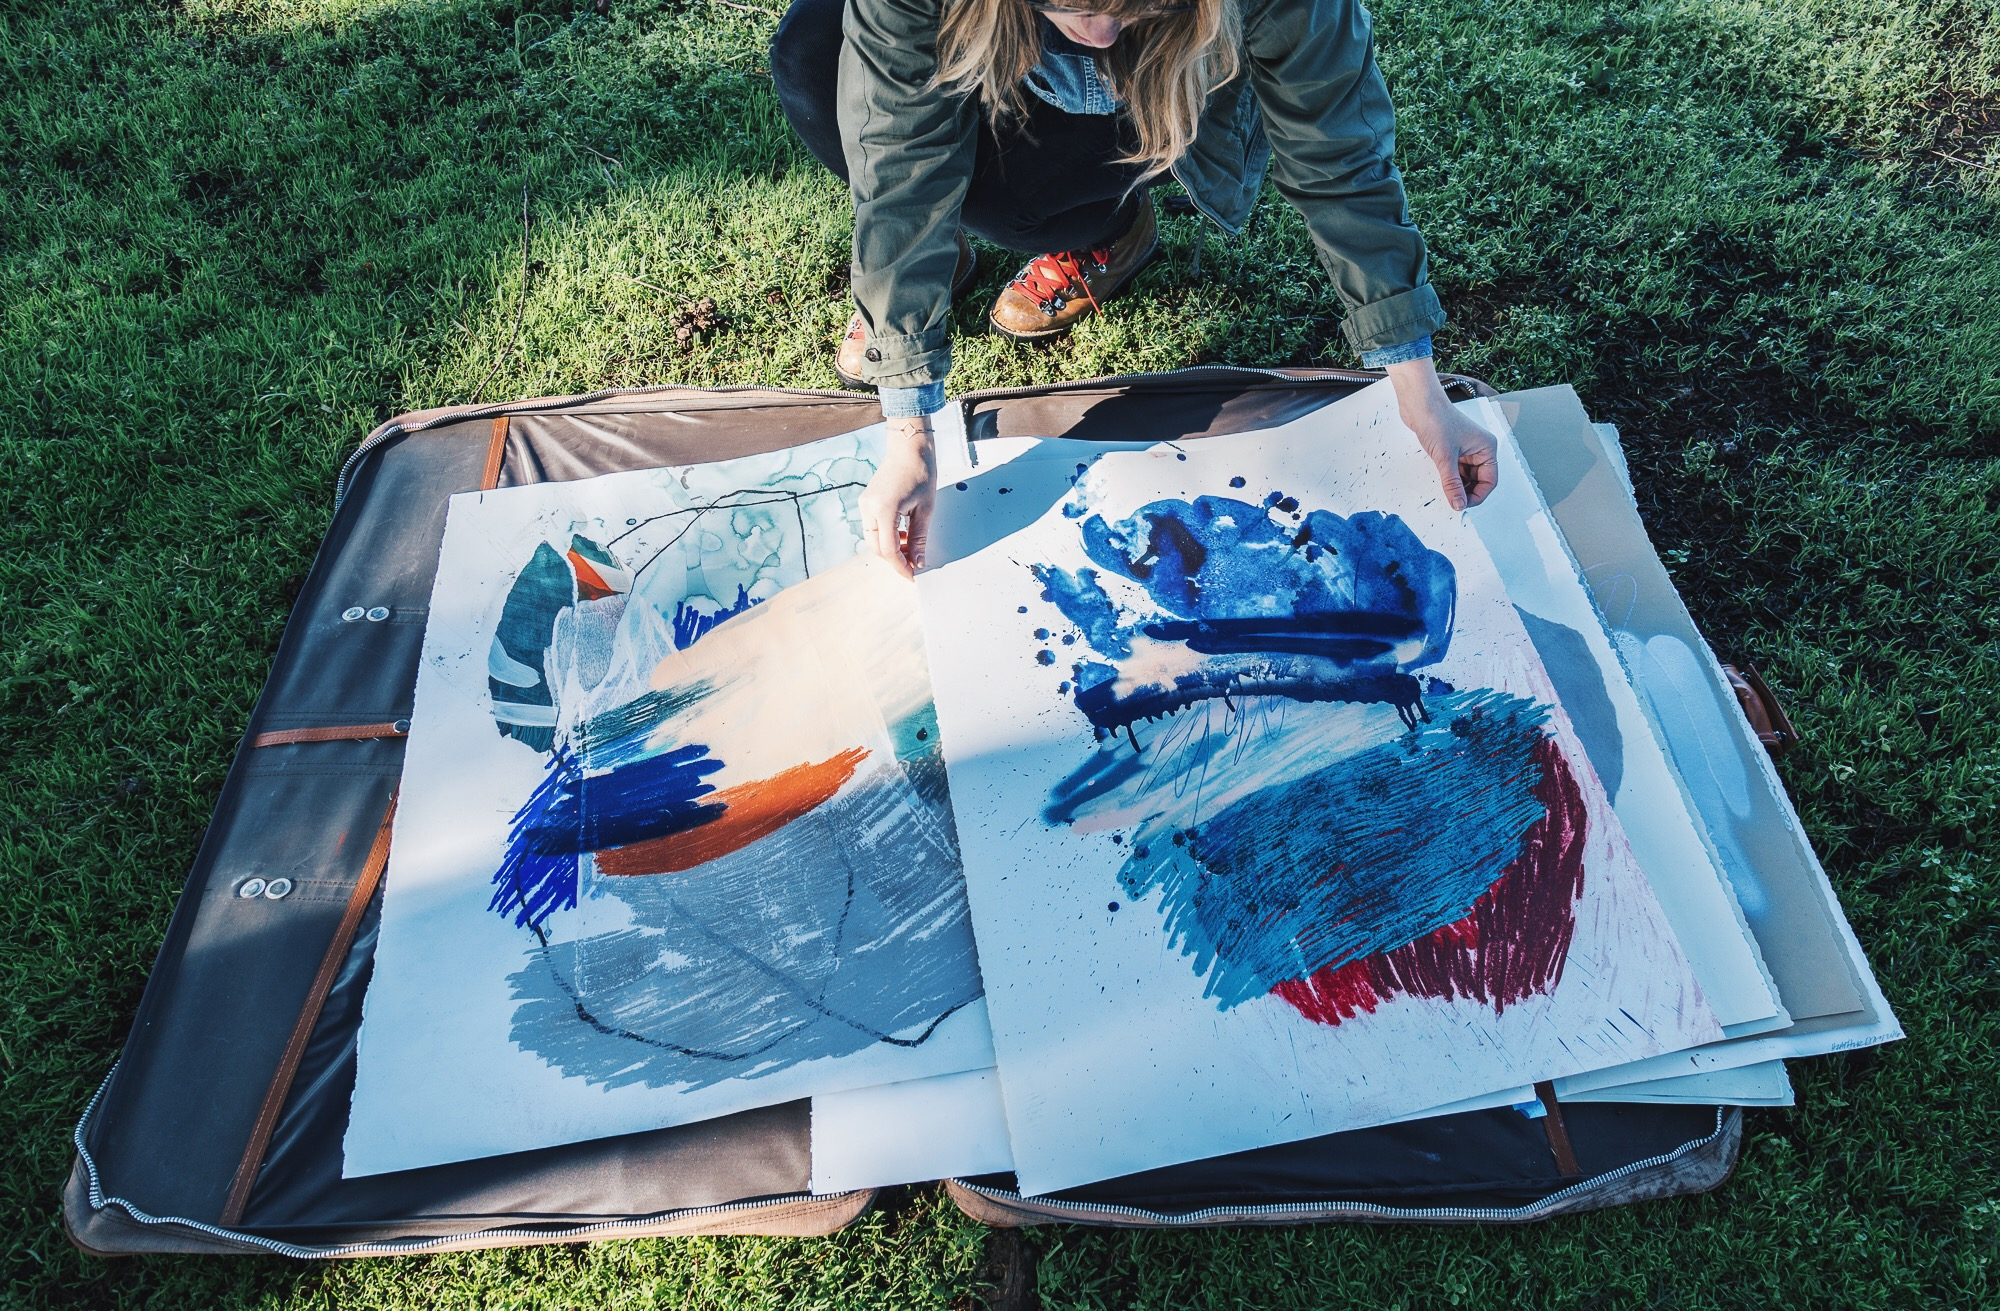 Paintings at Lands End by Heather Day | Heather Day Journal